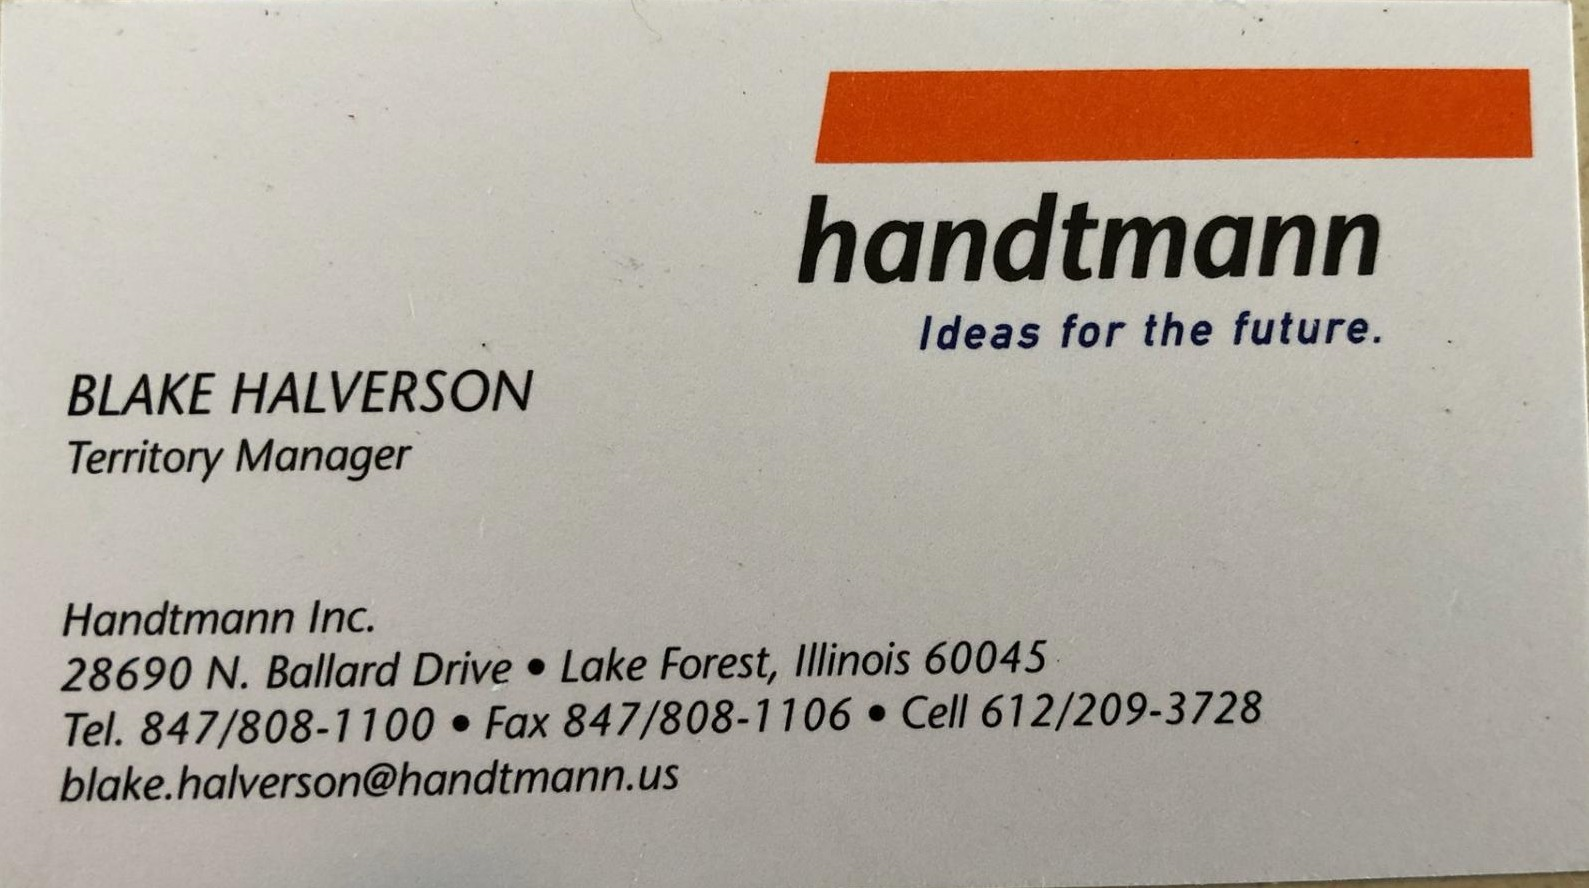 Handtmann_bus_card.jpg